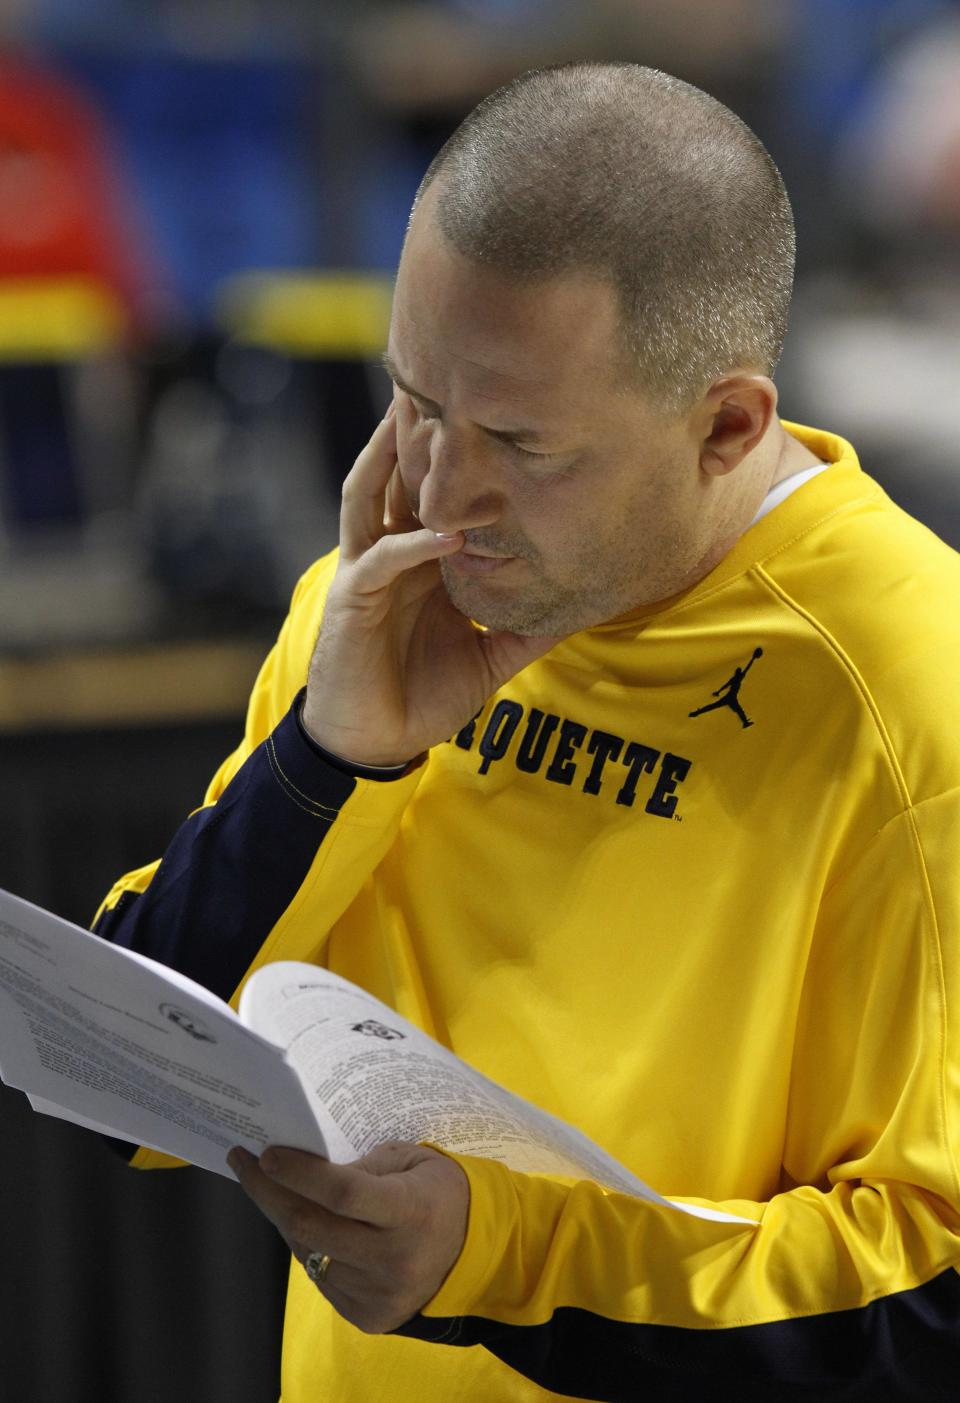 Marquette head coach Buzz Williams reads during practice for the second round of the NCAA college basketball tournament Wednesday, March 20, 2013, in Lexington, Ky. Marquette play Davidson on Thursday. (AP Photo/James Crisp)